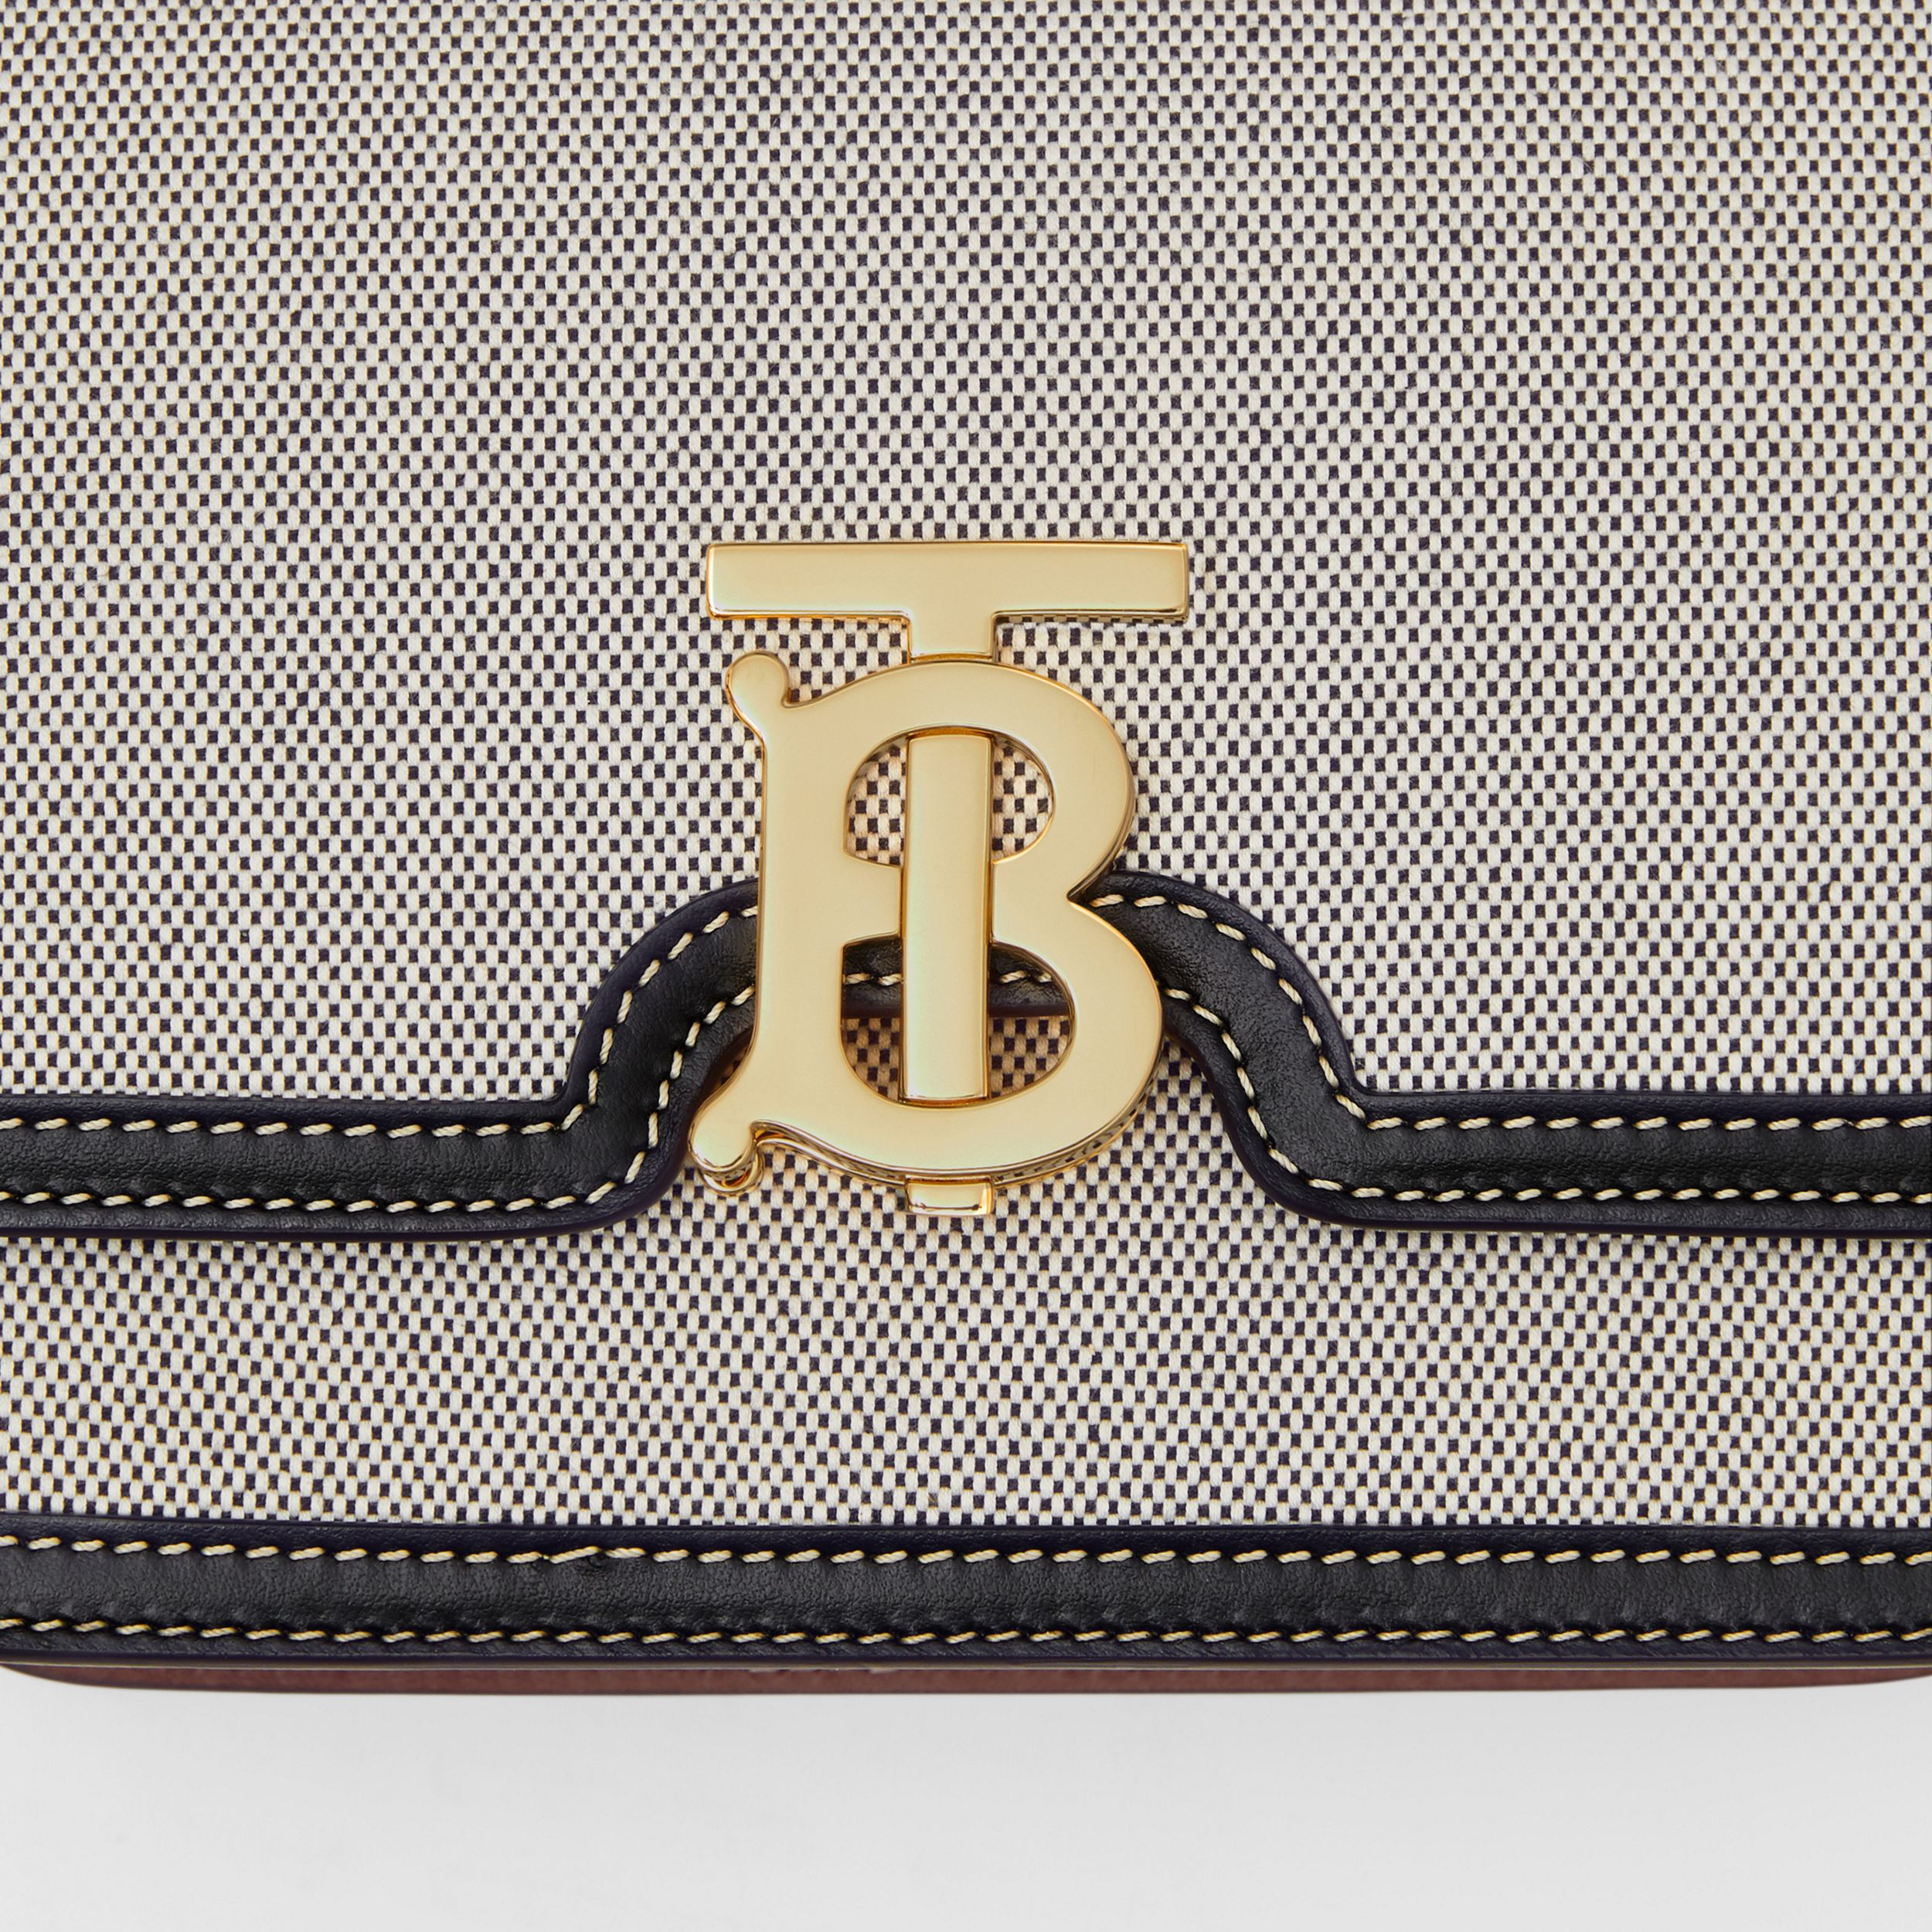 Small Tri-tone Canvas and Leather TB Bag in Black/tan - Women | Burberry Australia - 2